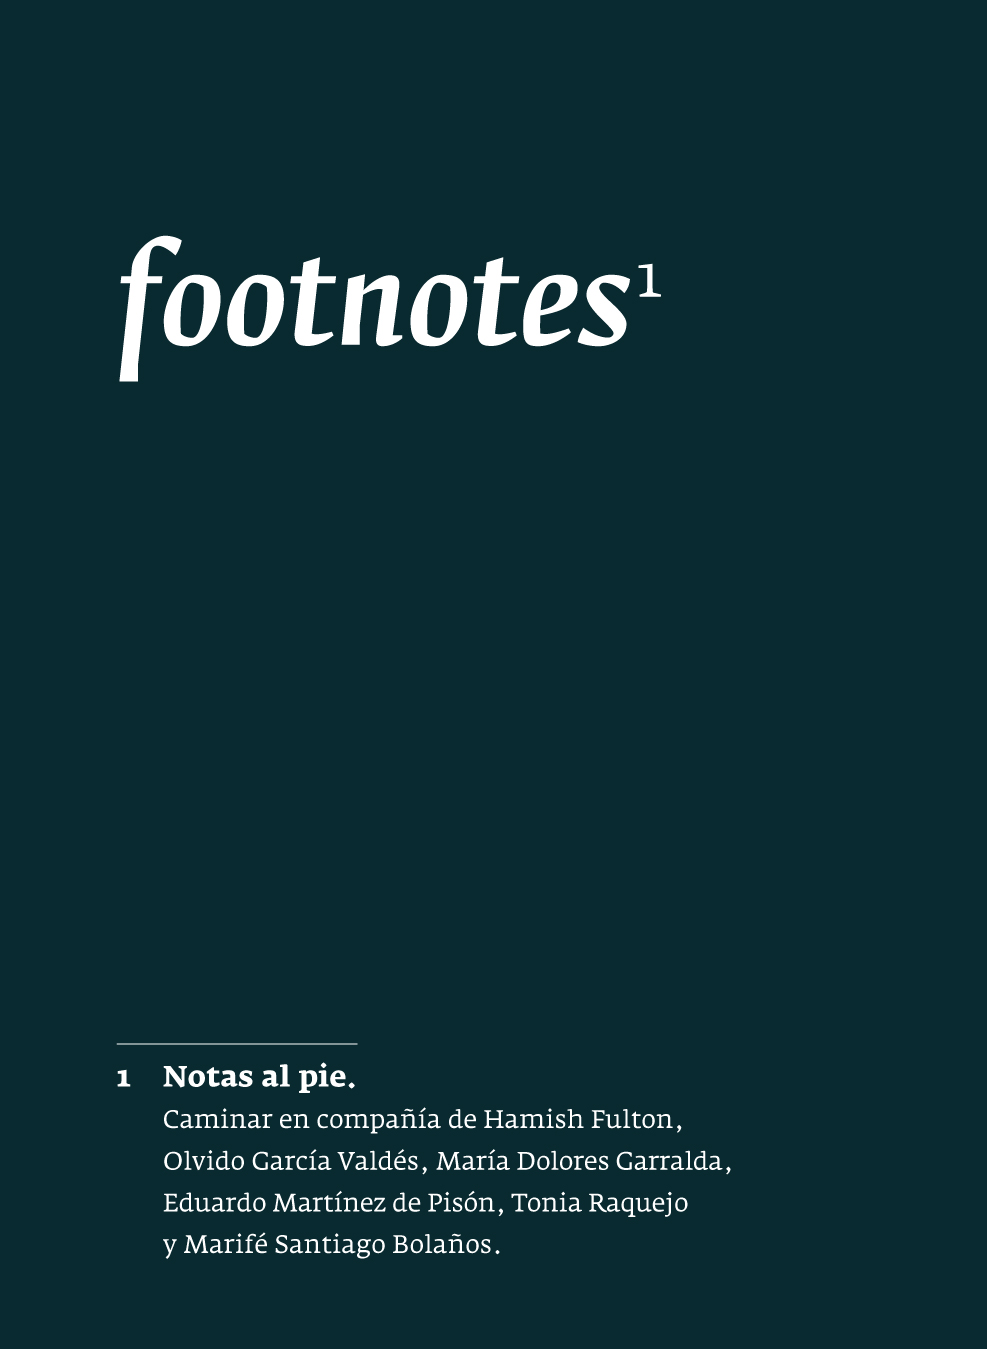 estuche-footnotes copia